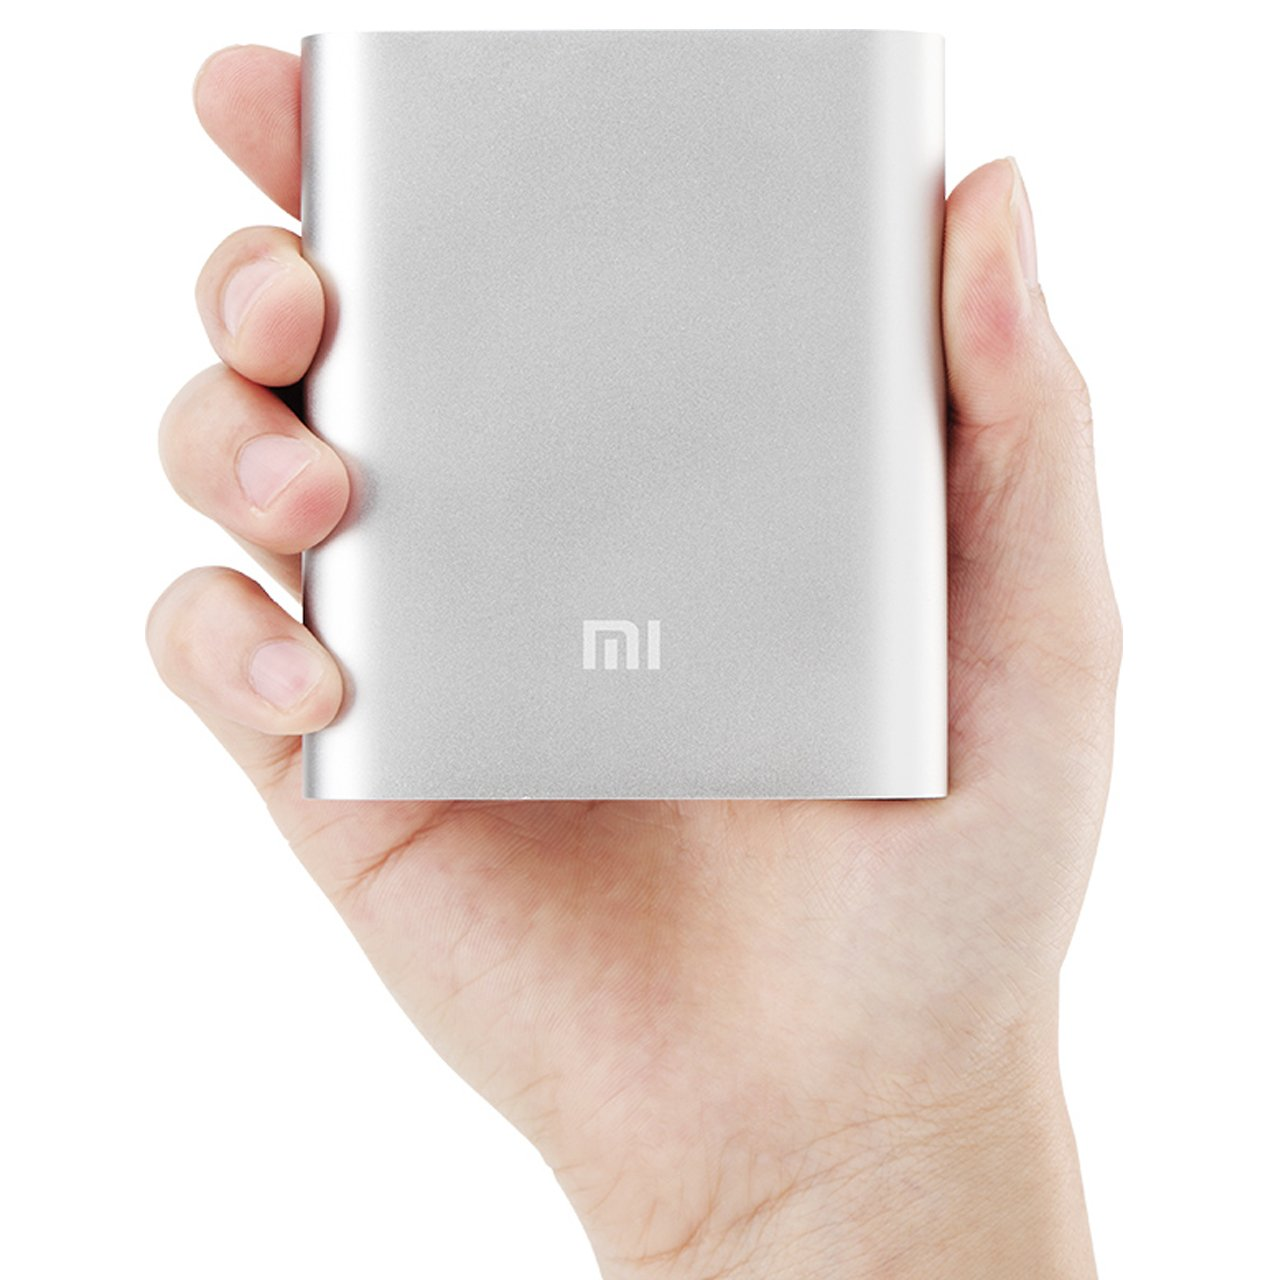 Xiaomi 5v 2a 10400mah Power Bank External Battery Charger for Smartphones and Tablets Such As Iphone